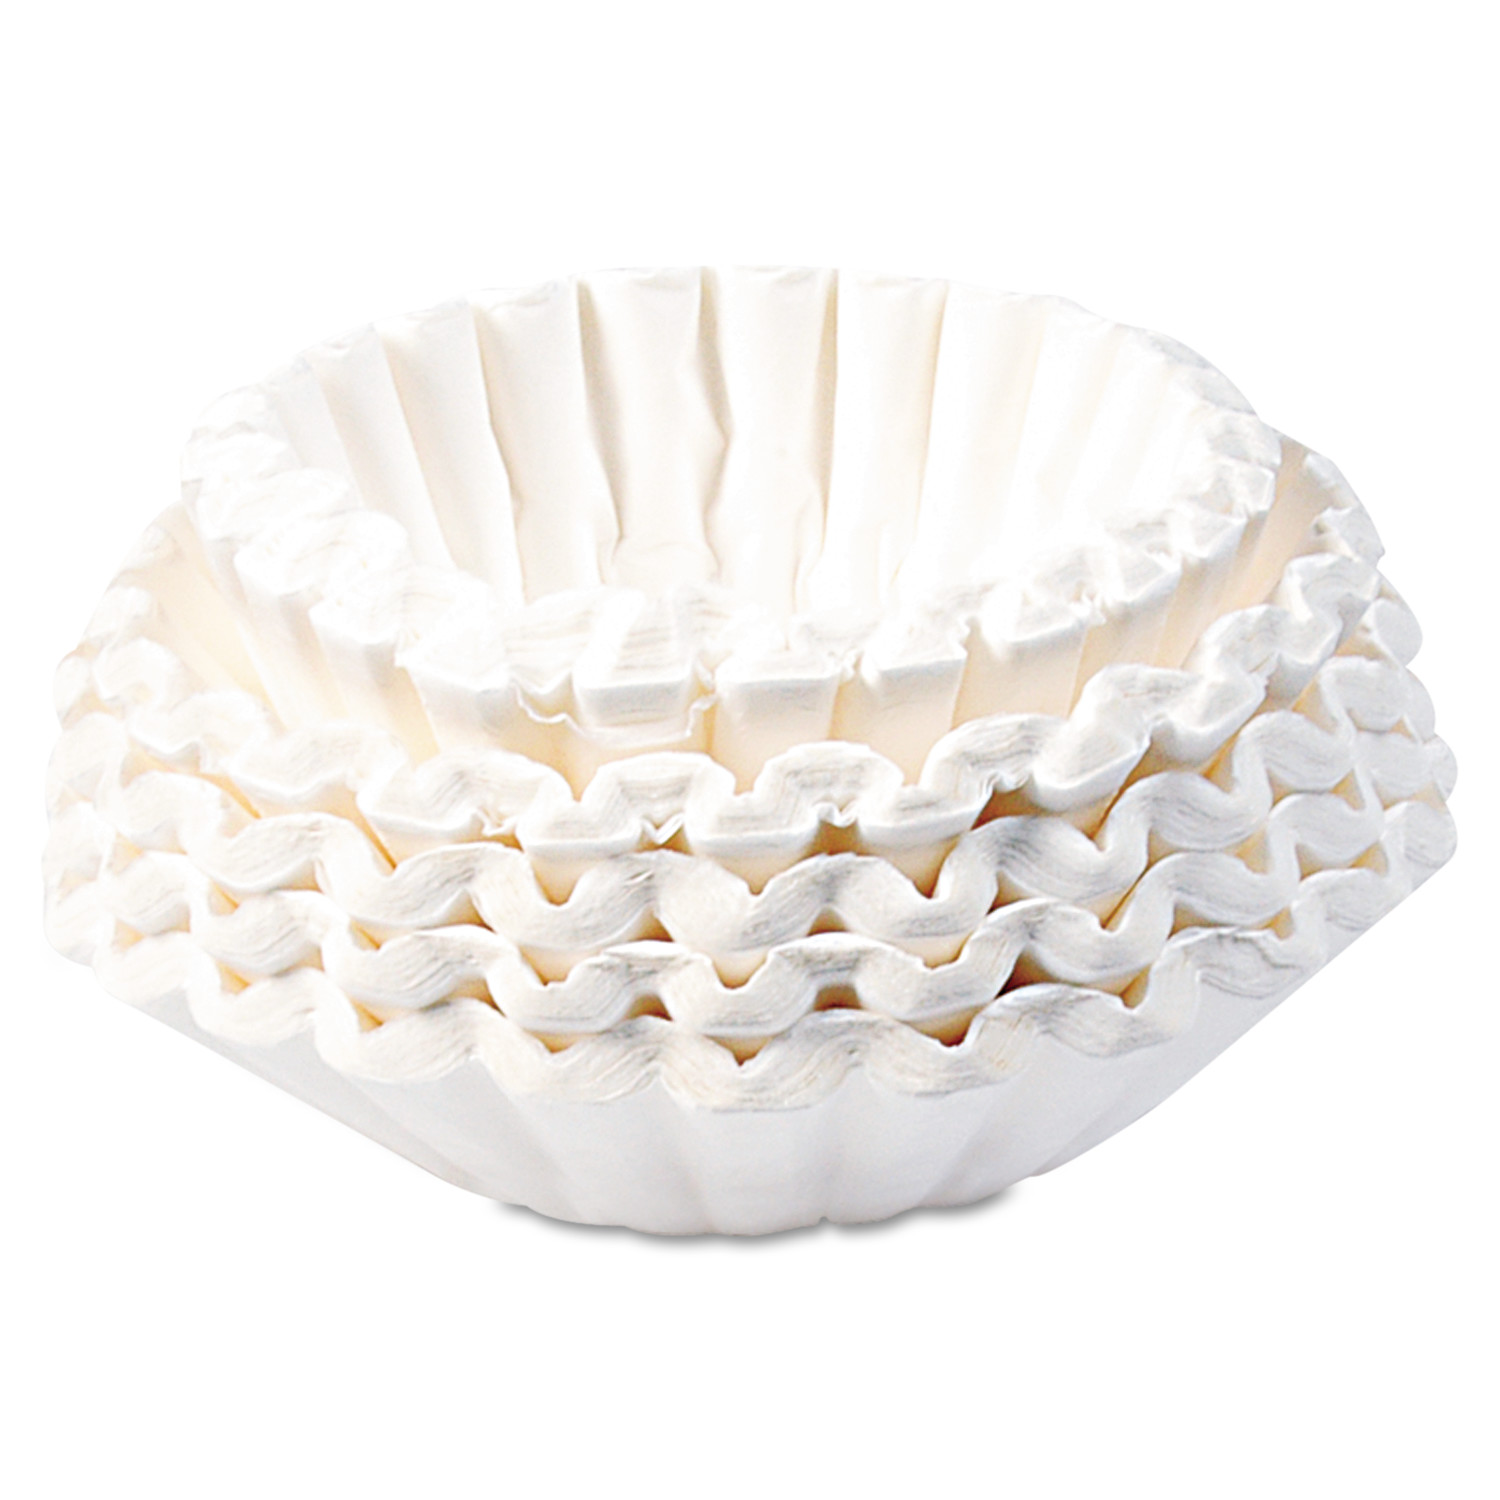 Bunn Commercial Coffee Filters, 12-Cup Size, 1,000-Pack by BUNN-O-MATIC